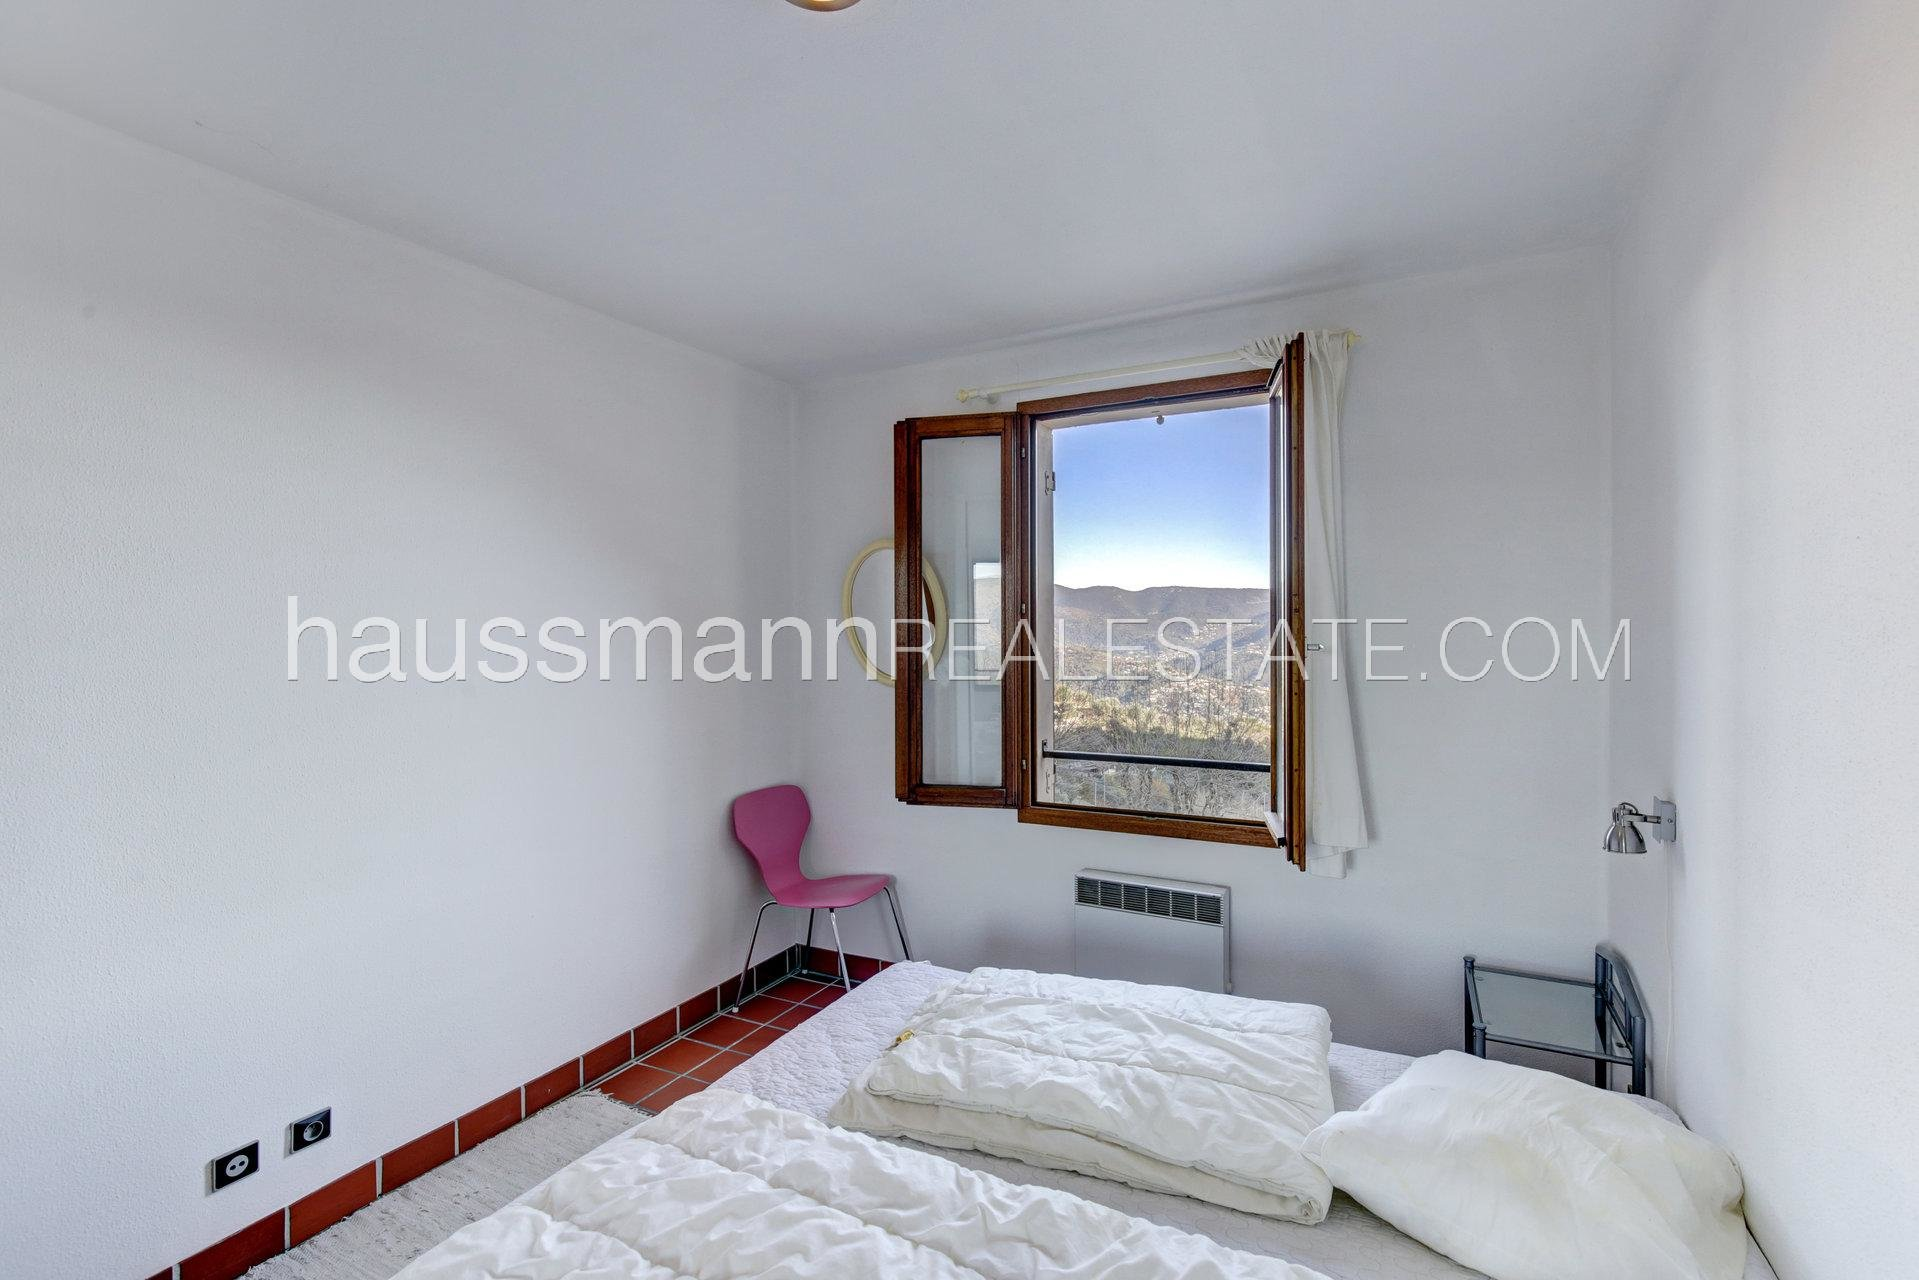 Buying Apartment Le Broc 2 bedroom flat with large terrace